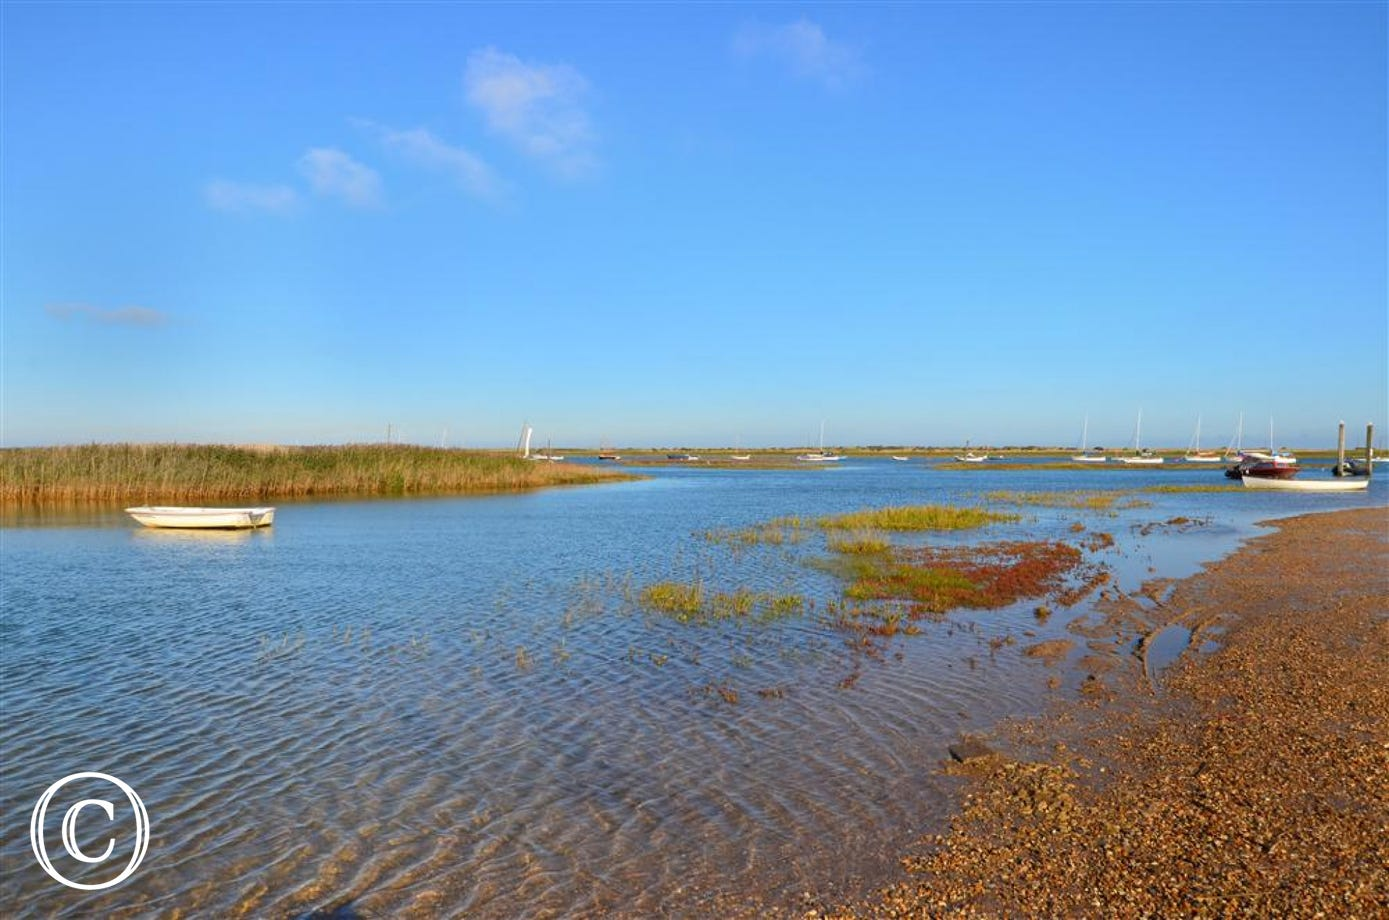 The picturesque Brancaster Staithe